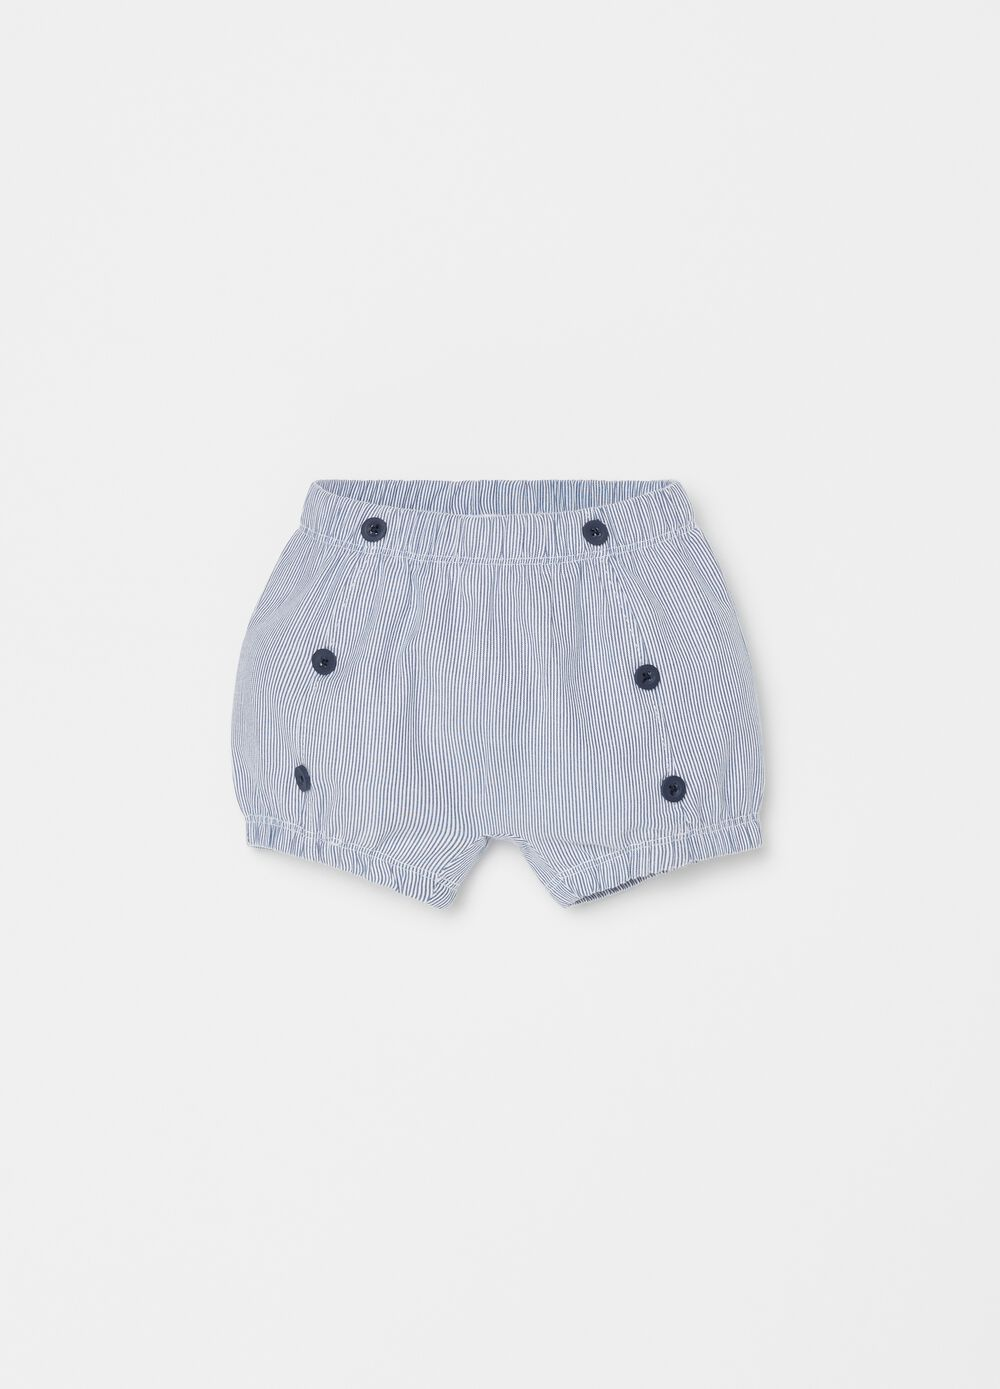 Striped shorts in 100% cotton